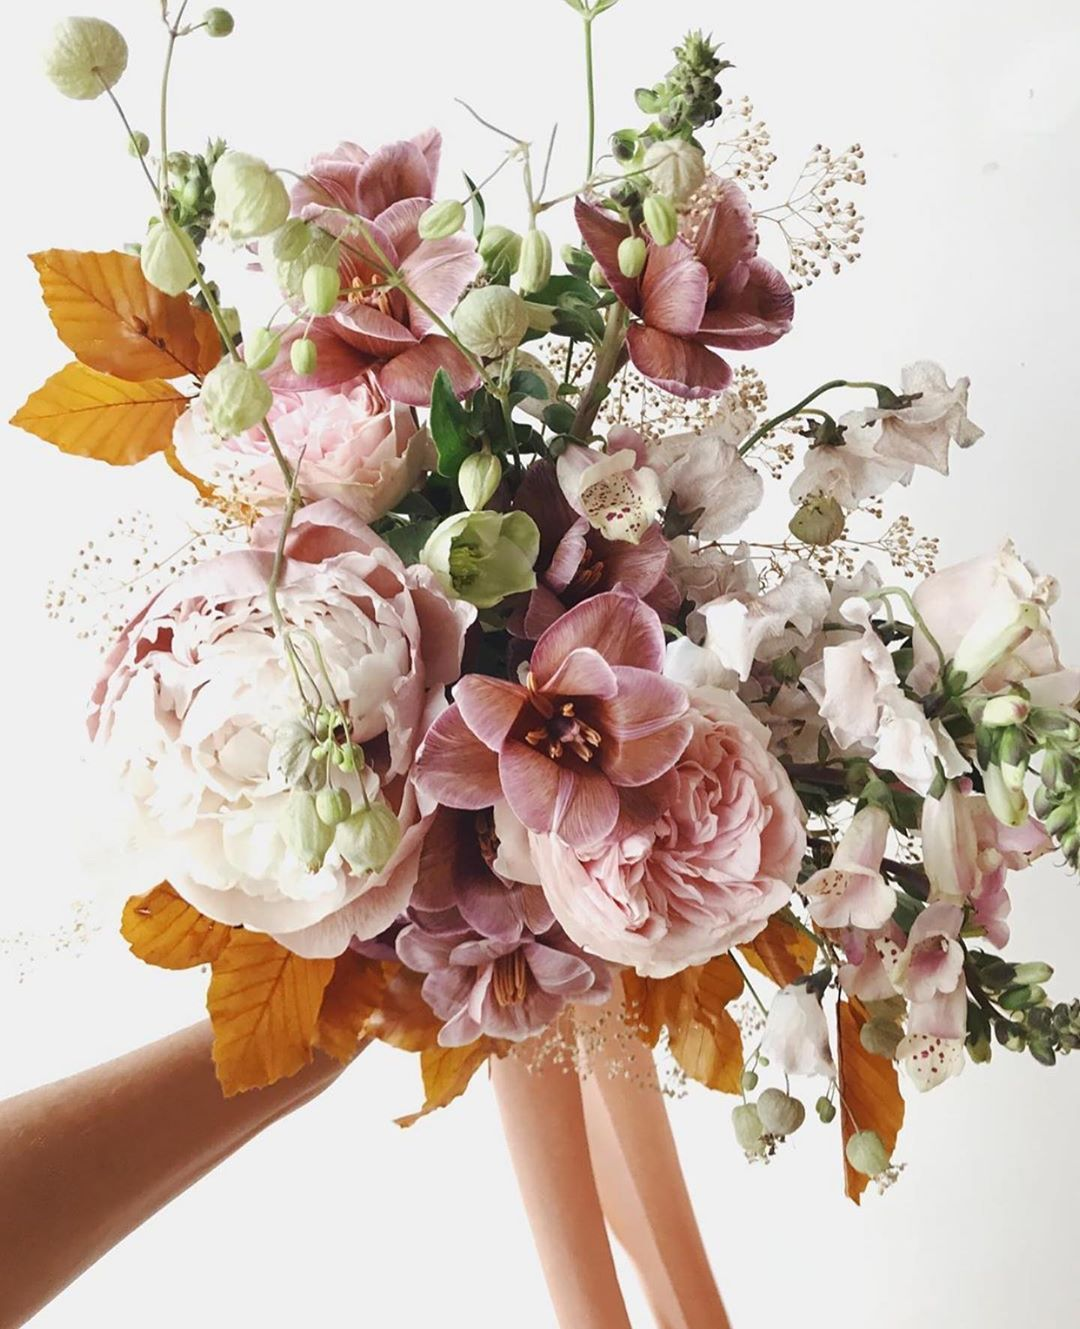 So Much To Love In This Stunning Bouquet By